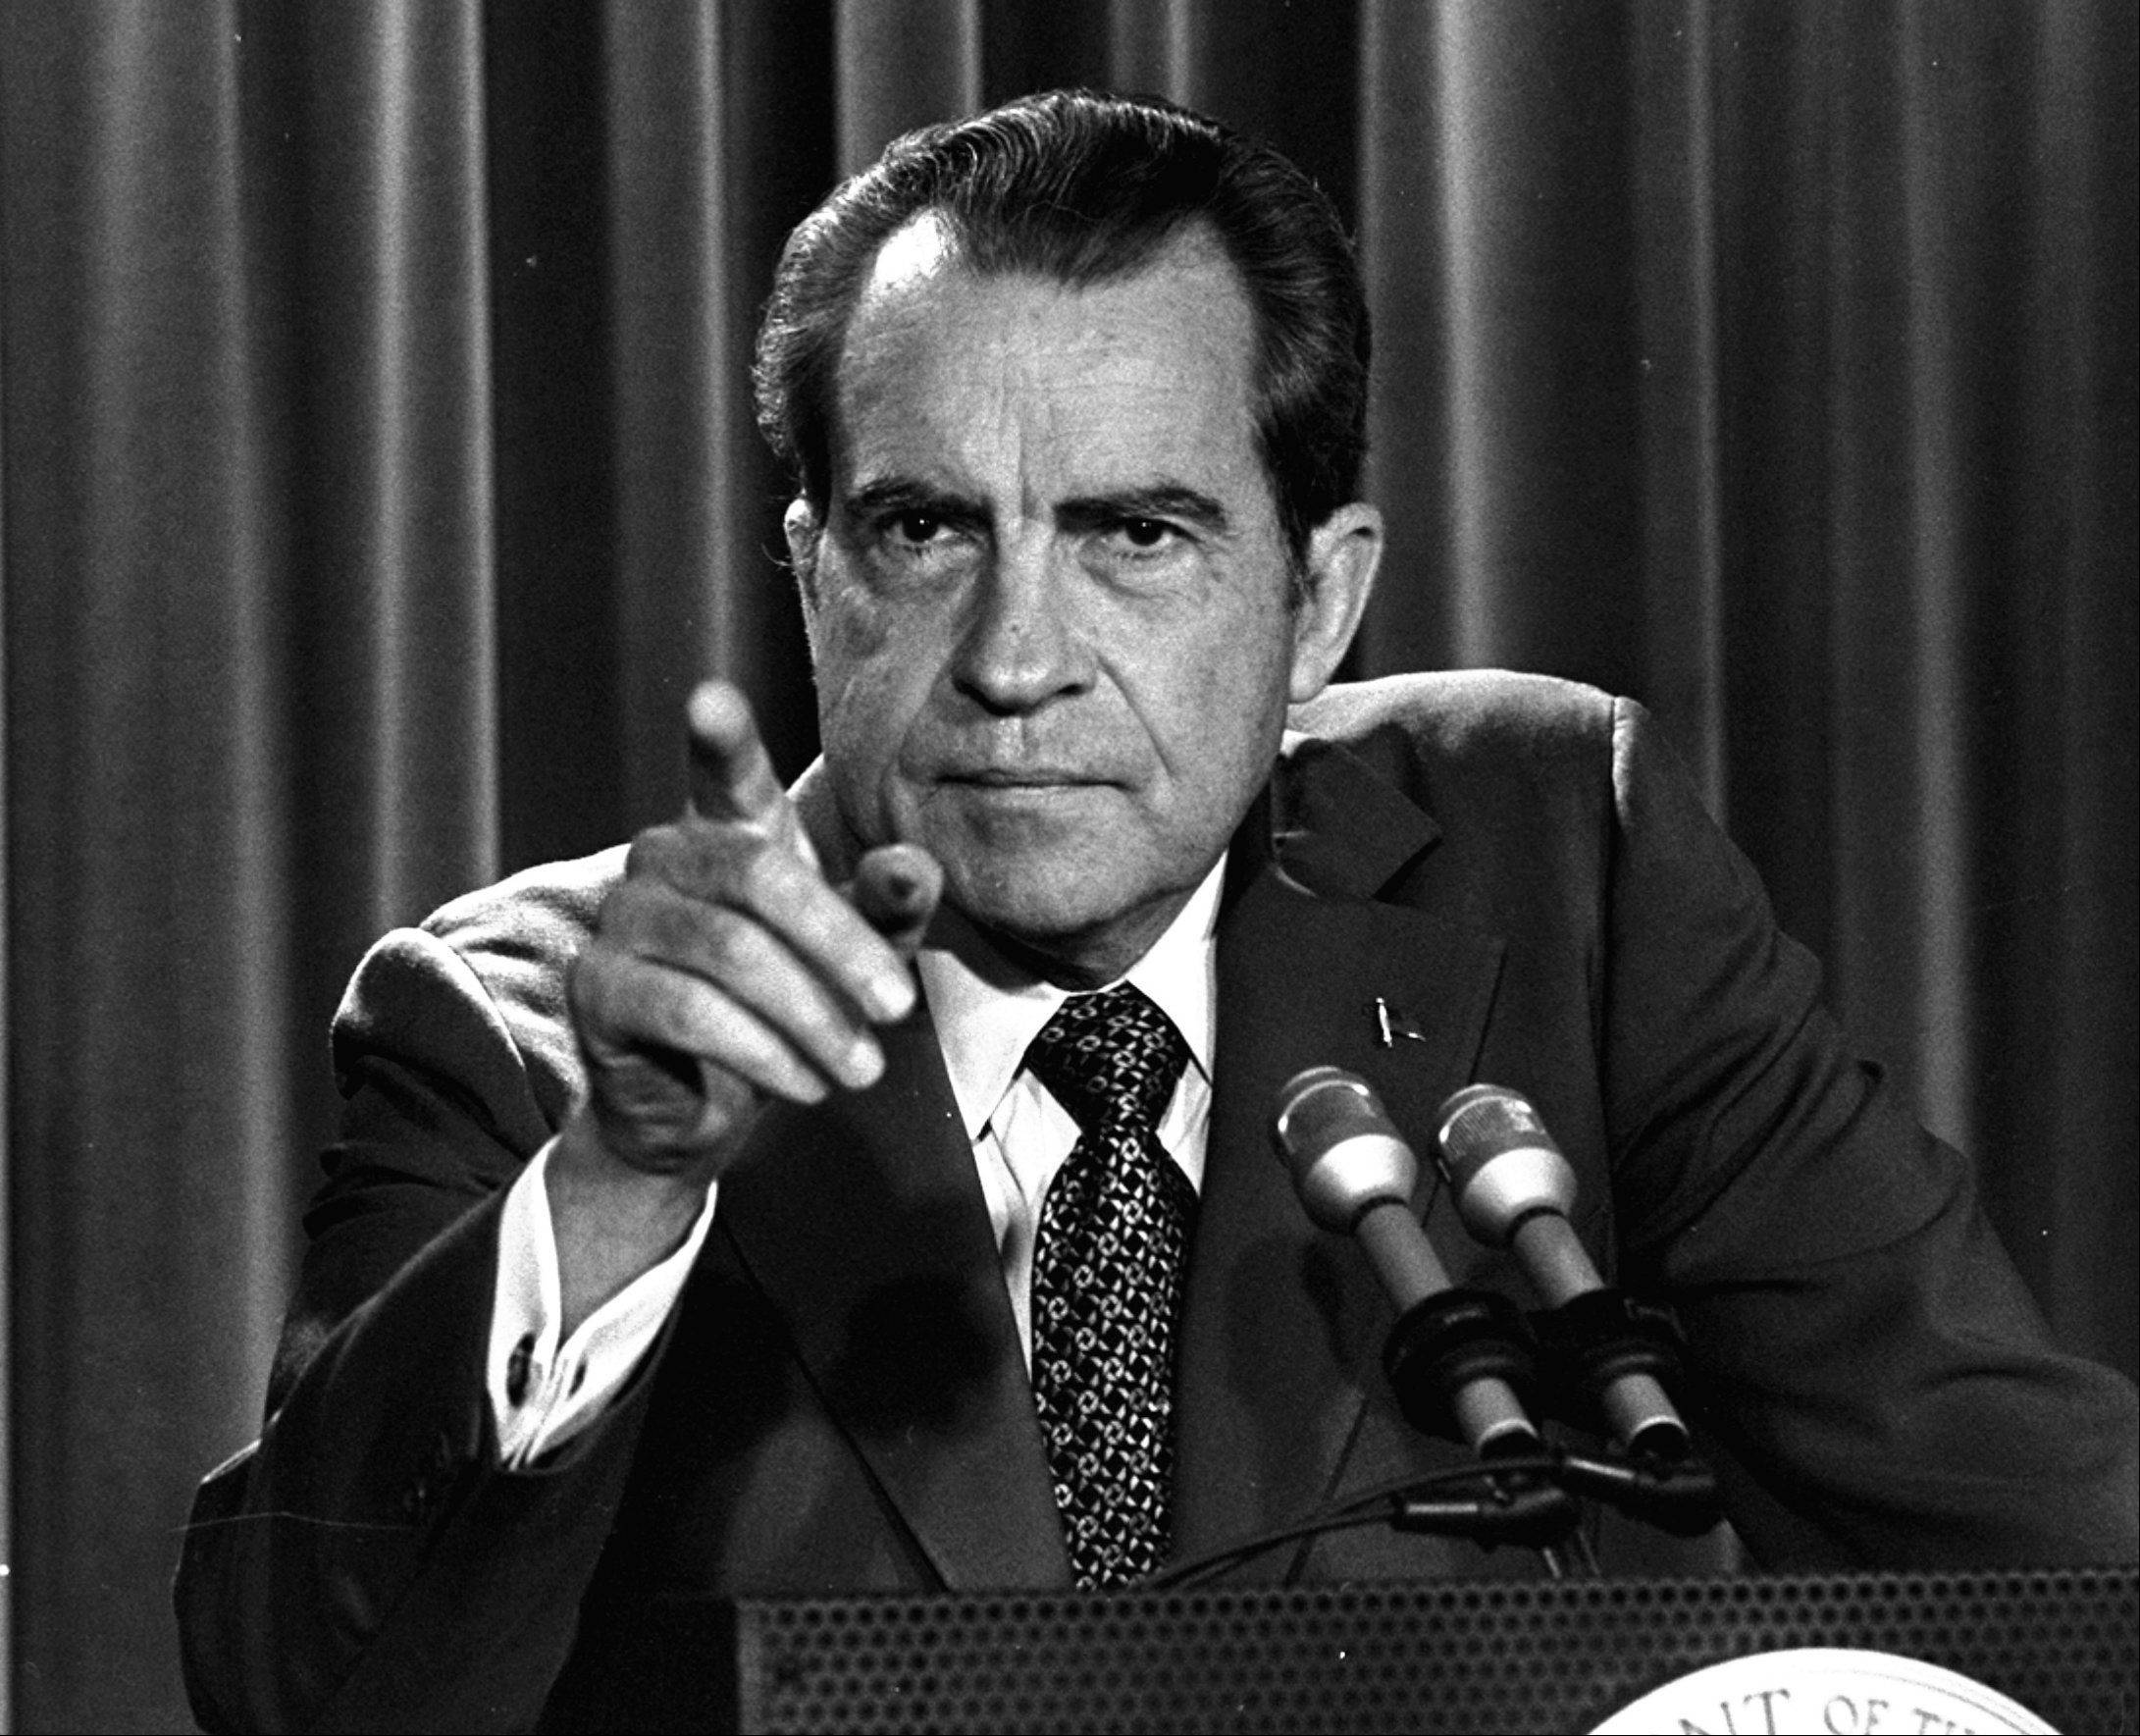 In this March 15, 1973, file photo, President Nixon tells a White House news conference that he will not allow his legal counsel, John Dean, to testify on Capitol Hill in the Watergate investigation and challenged the Senate to test him in the Supreme Court. A feisty Nixon defended his shredded legacy and Watergate-era actions in grand jury testimony that he thought would never come out. On Thursday, Nov. 10, 2011, it did.